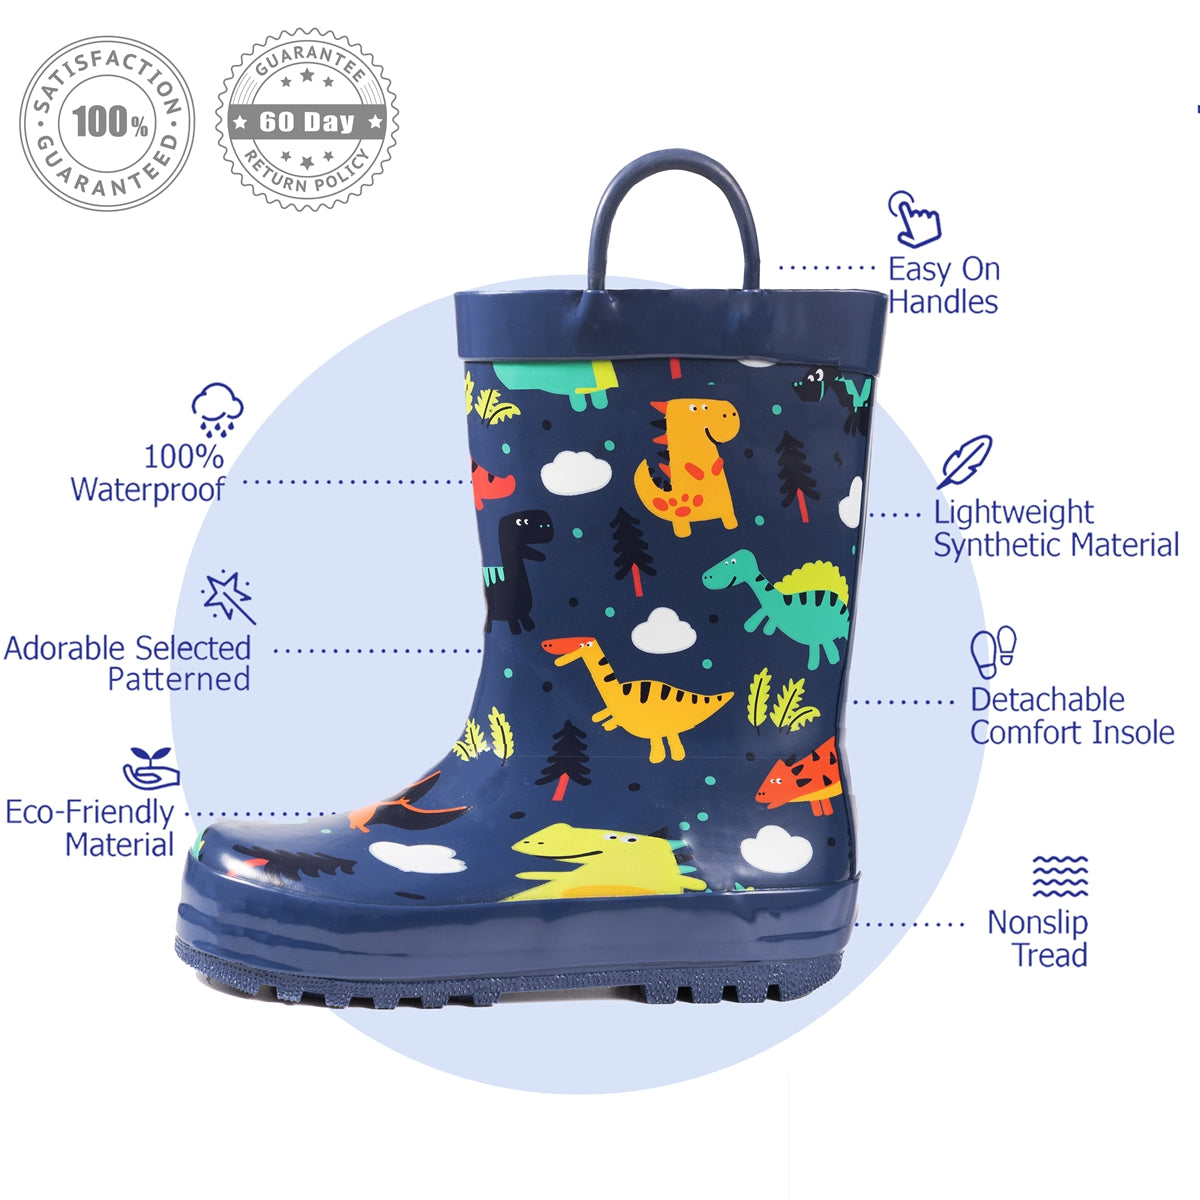 Outee Toddler Kids Boys Rubber Rain Boots Cute Printed with Easy-On Handles - Navy Dinosaur